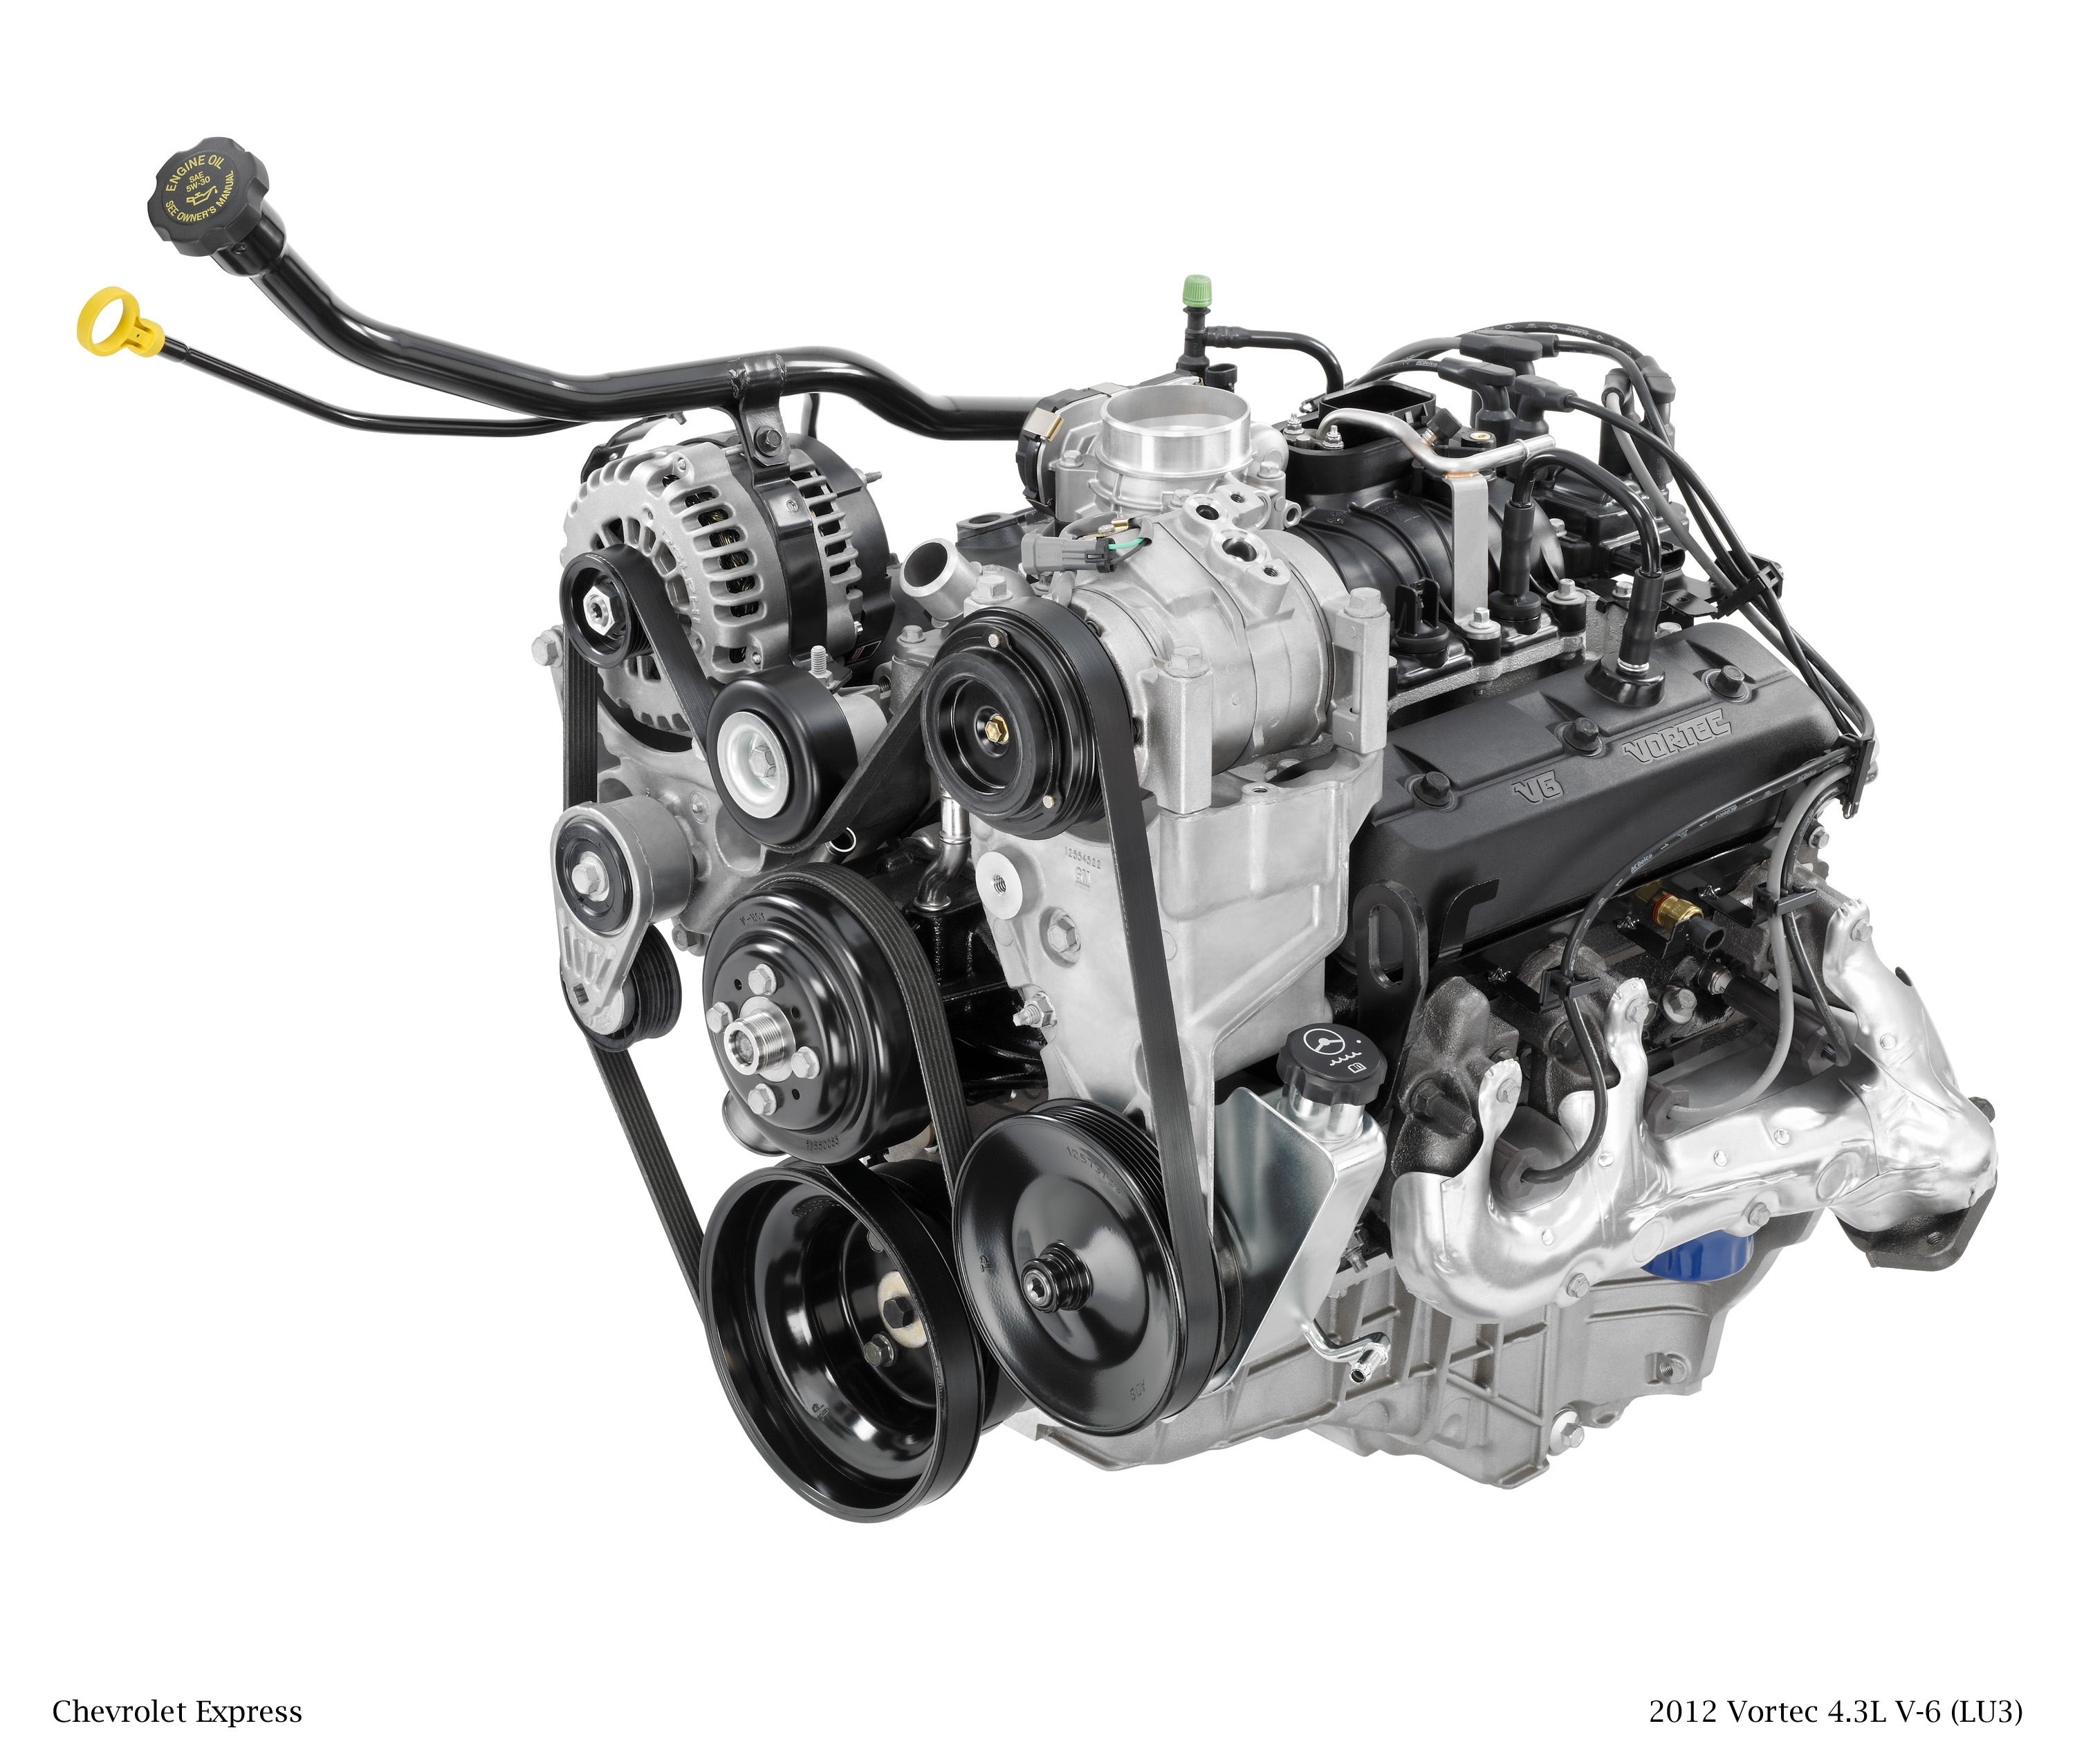 Creaky Crankshafts: Three Engines We're Happy to See ...